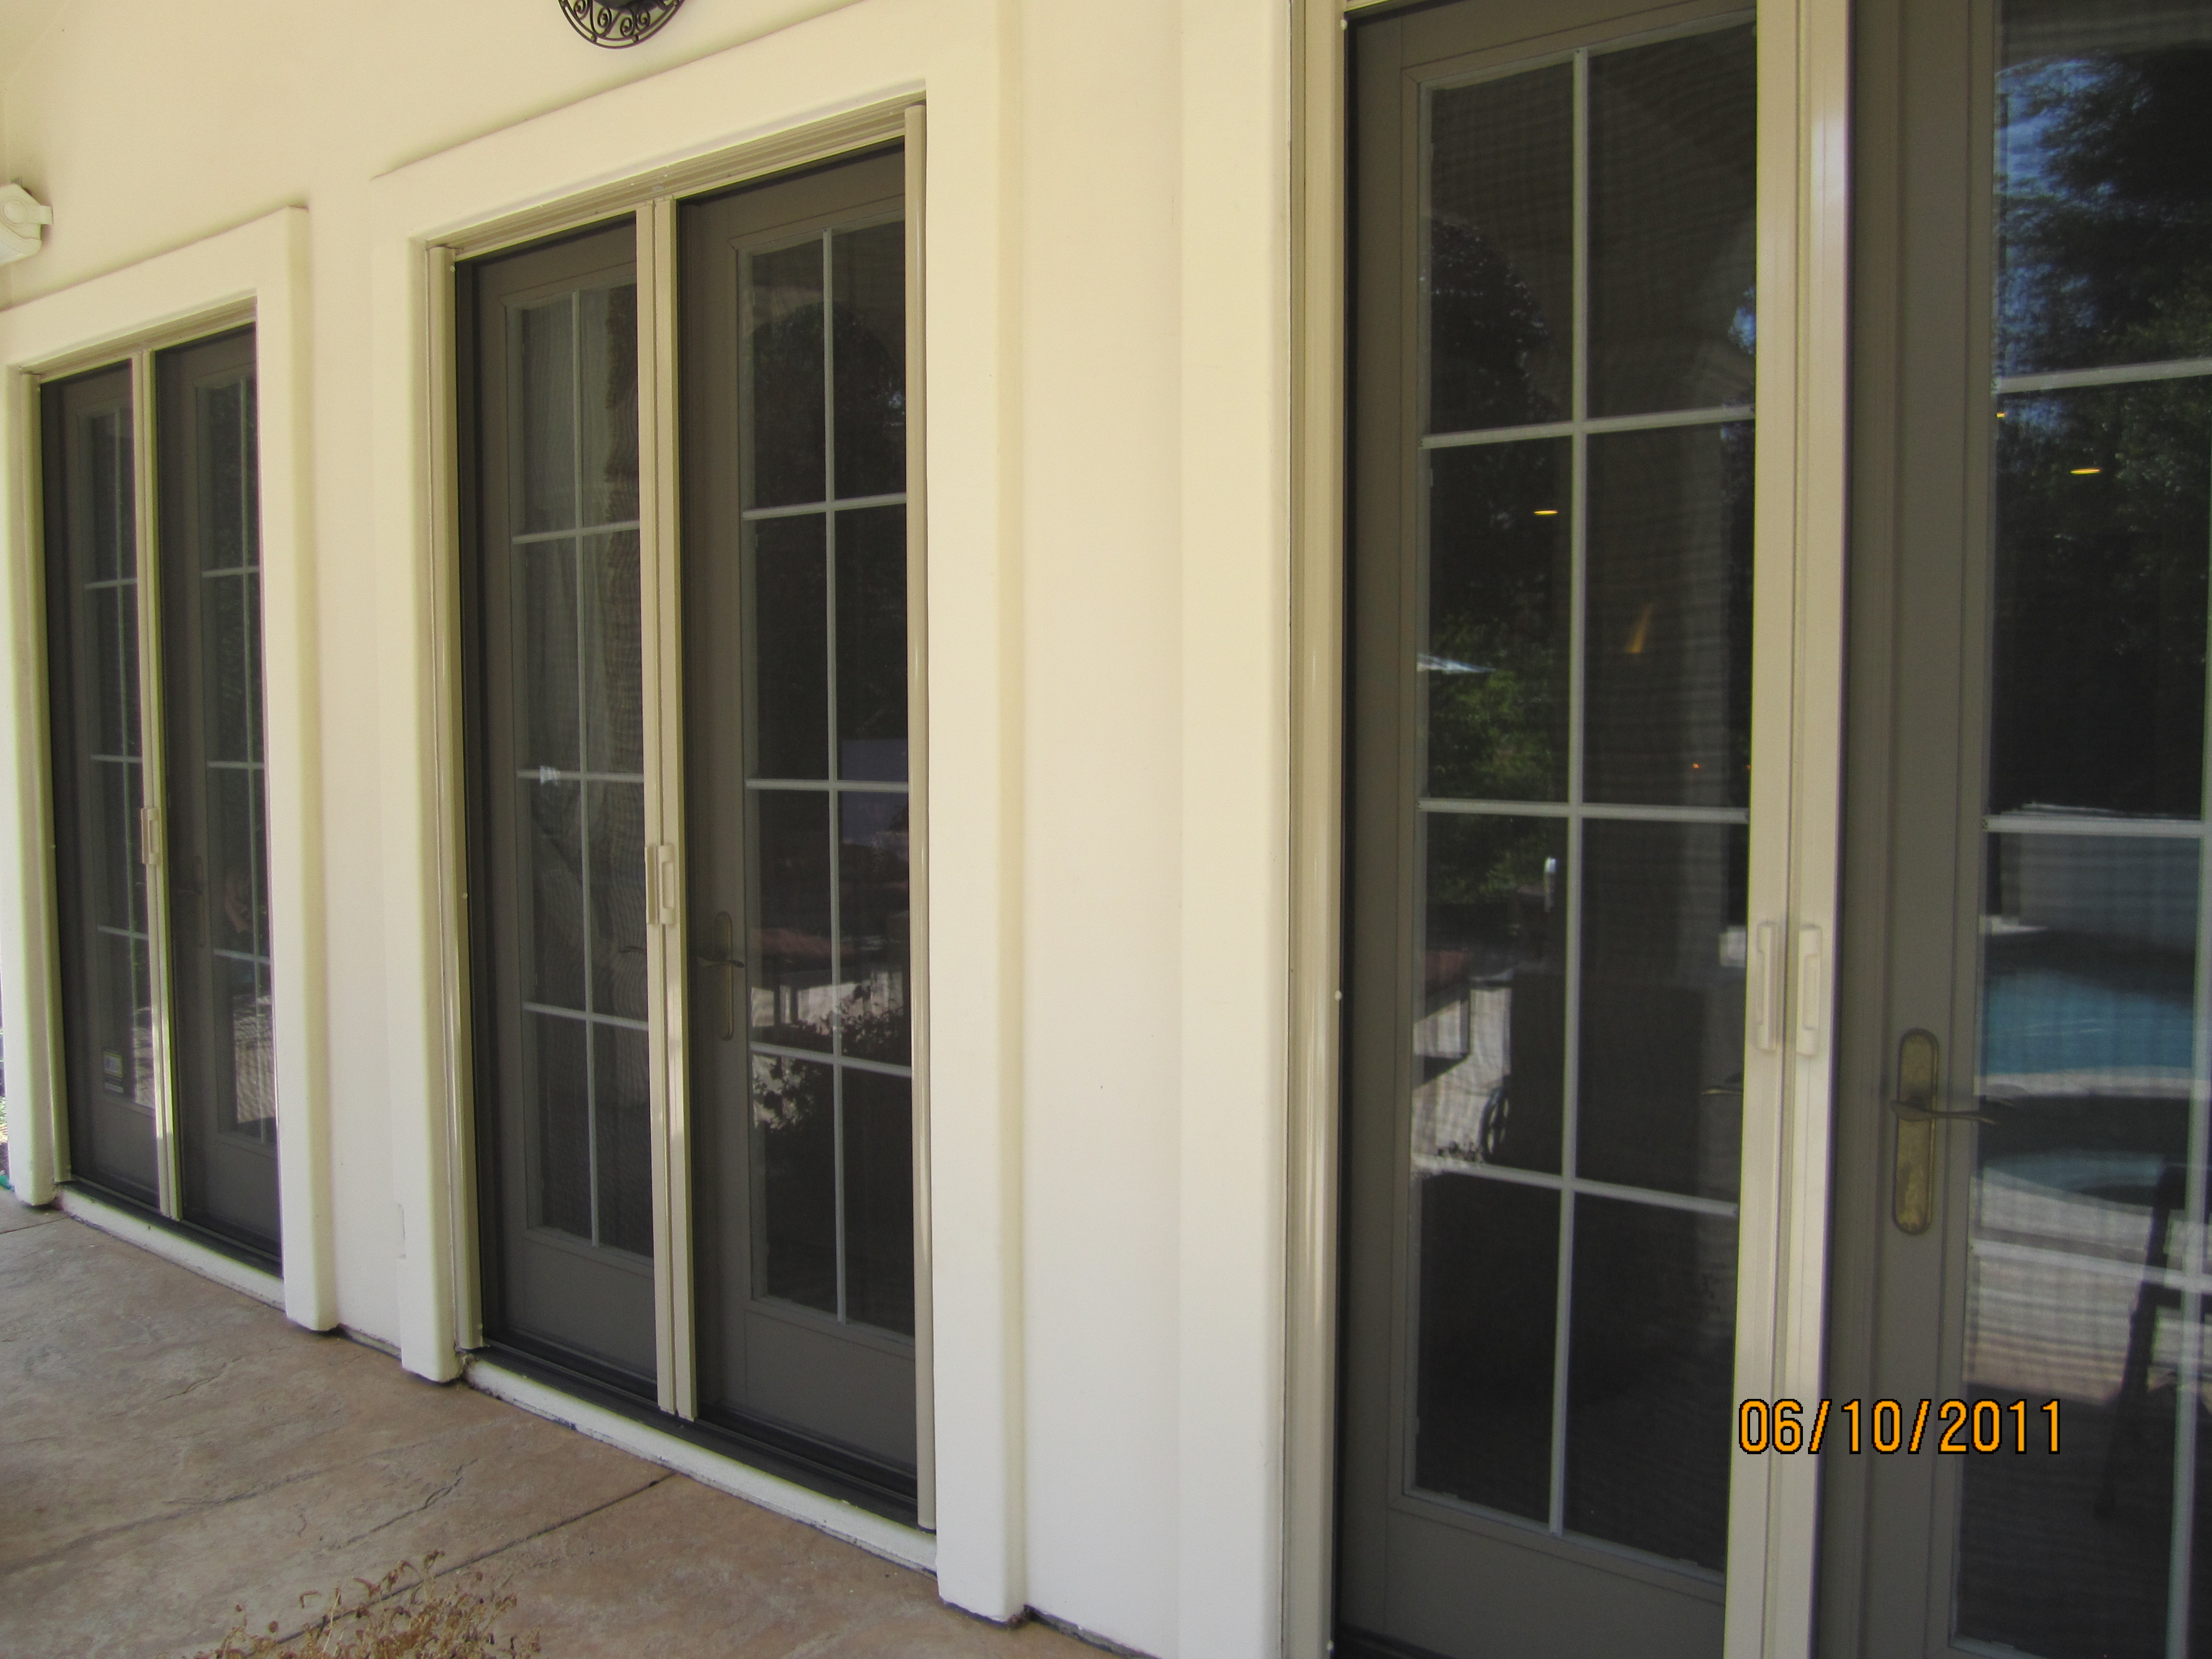 All double sets retractable screen french doors simi valley mobile screen service - Double french doors with screens ...